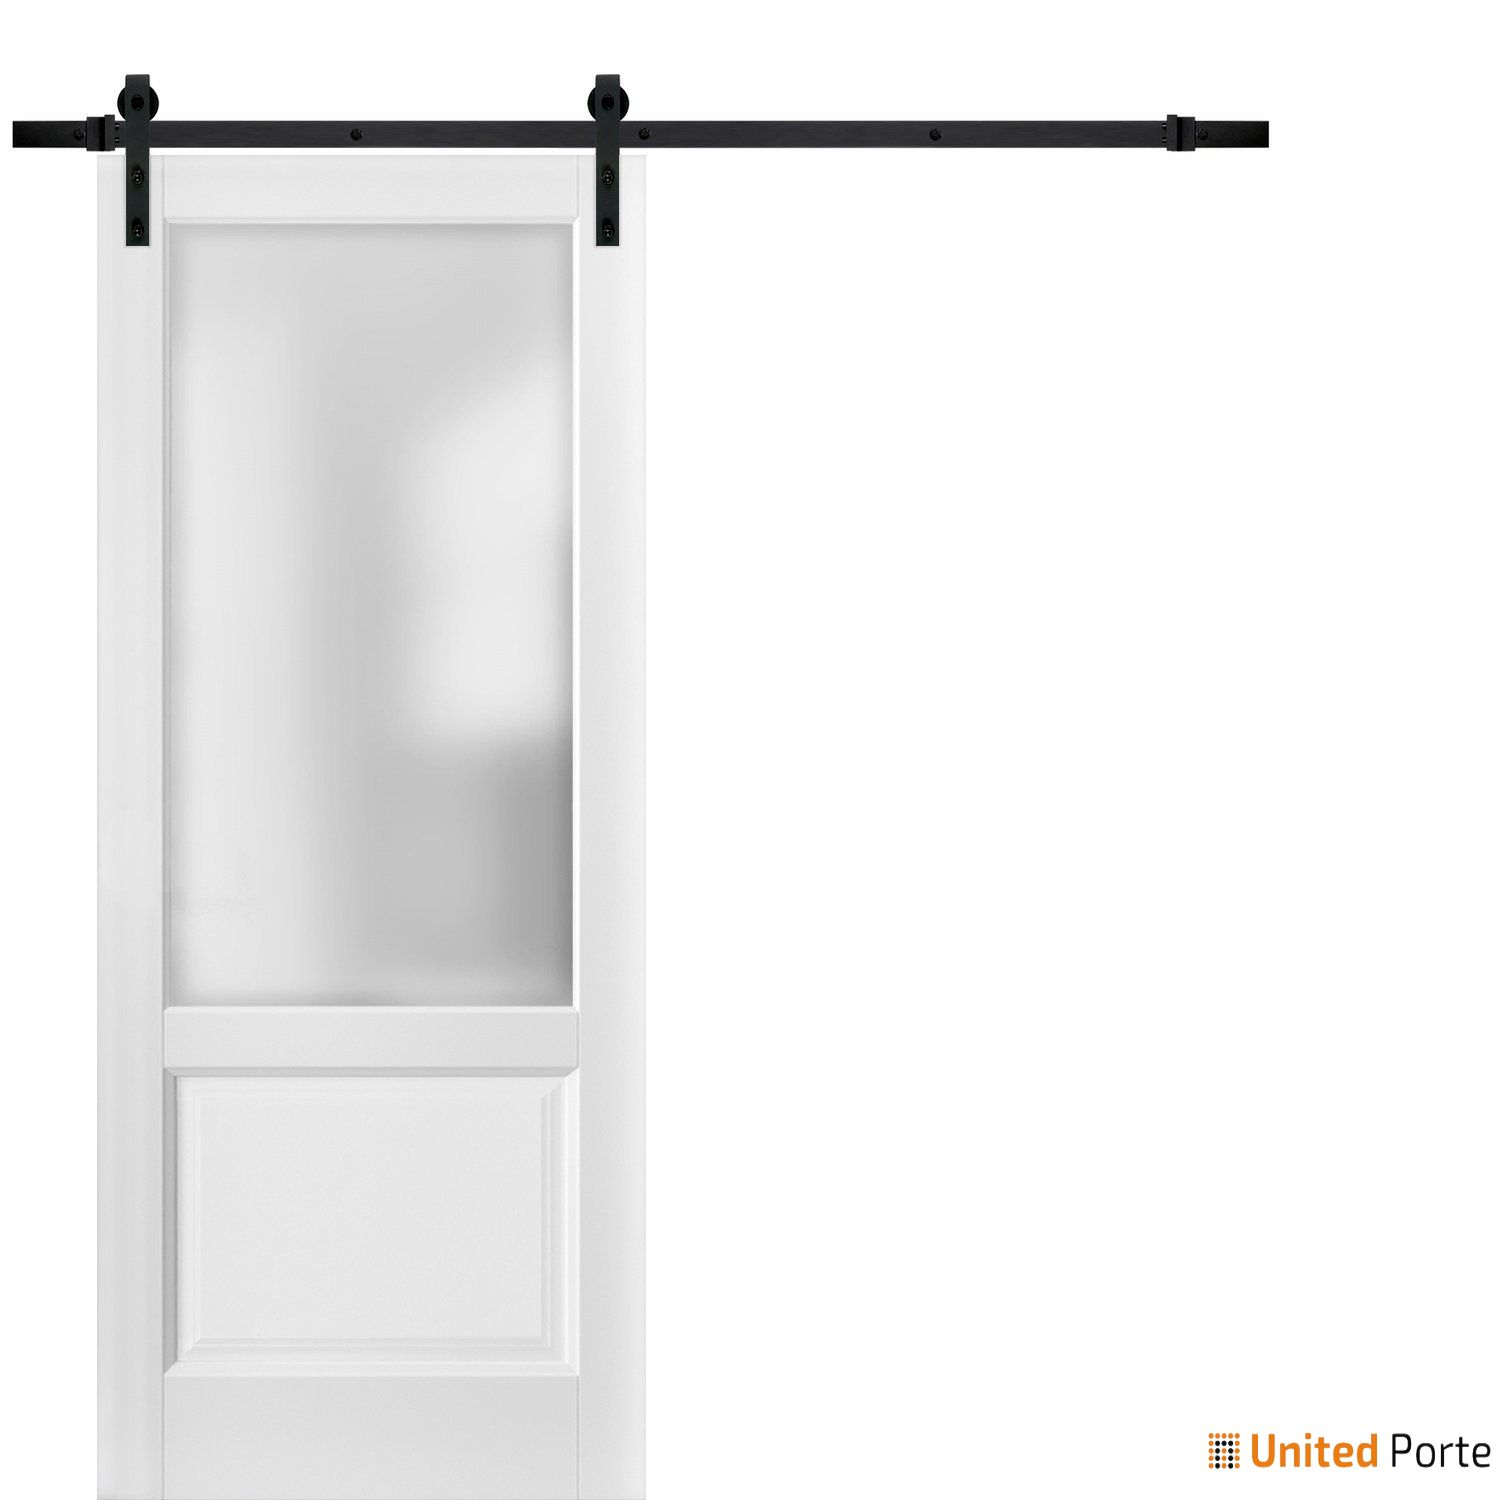 Lucia 22 White Silk with Frosted Opaque Glass Sliding Barn Door with Black Hardware | Lite Wooden Solid Panel Interior Barn Doors